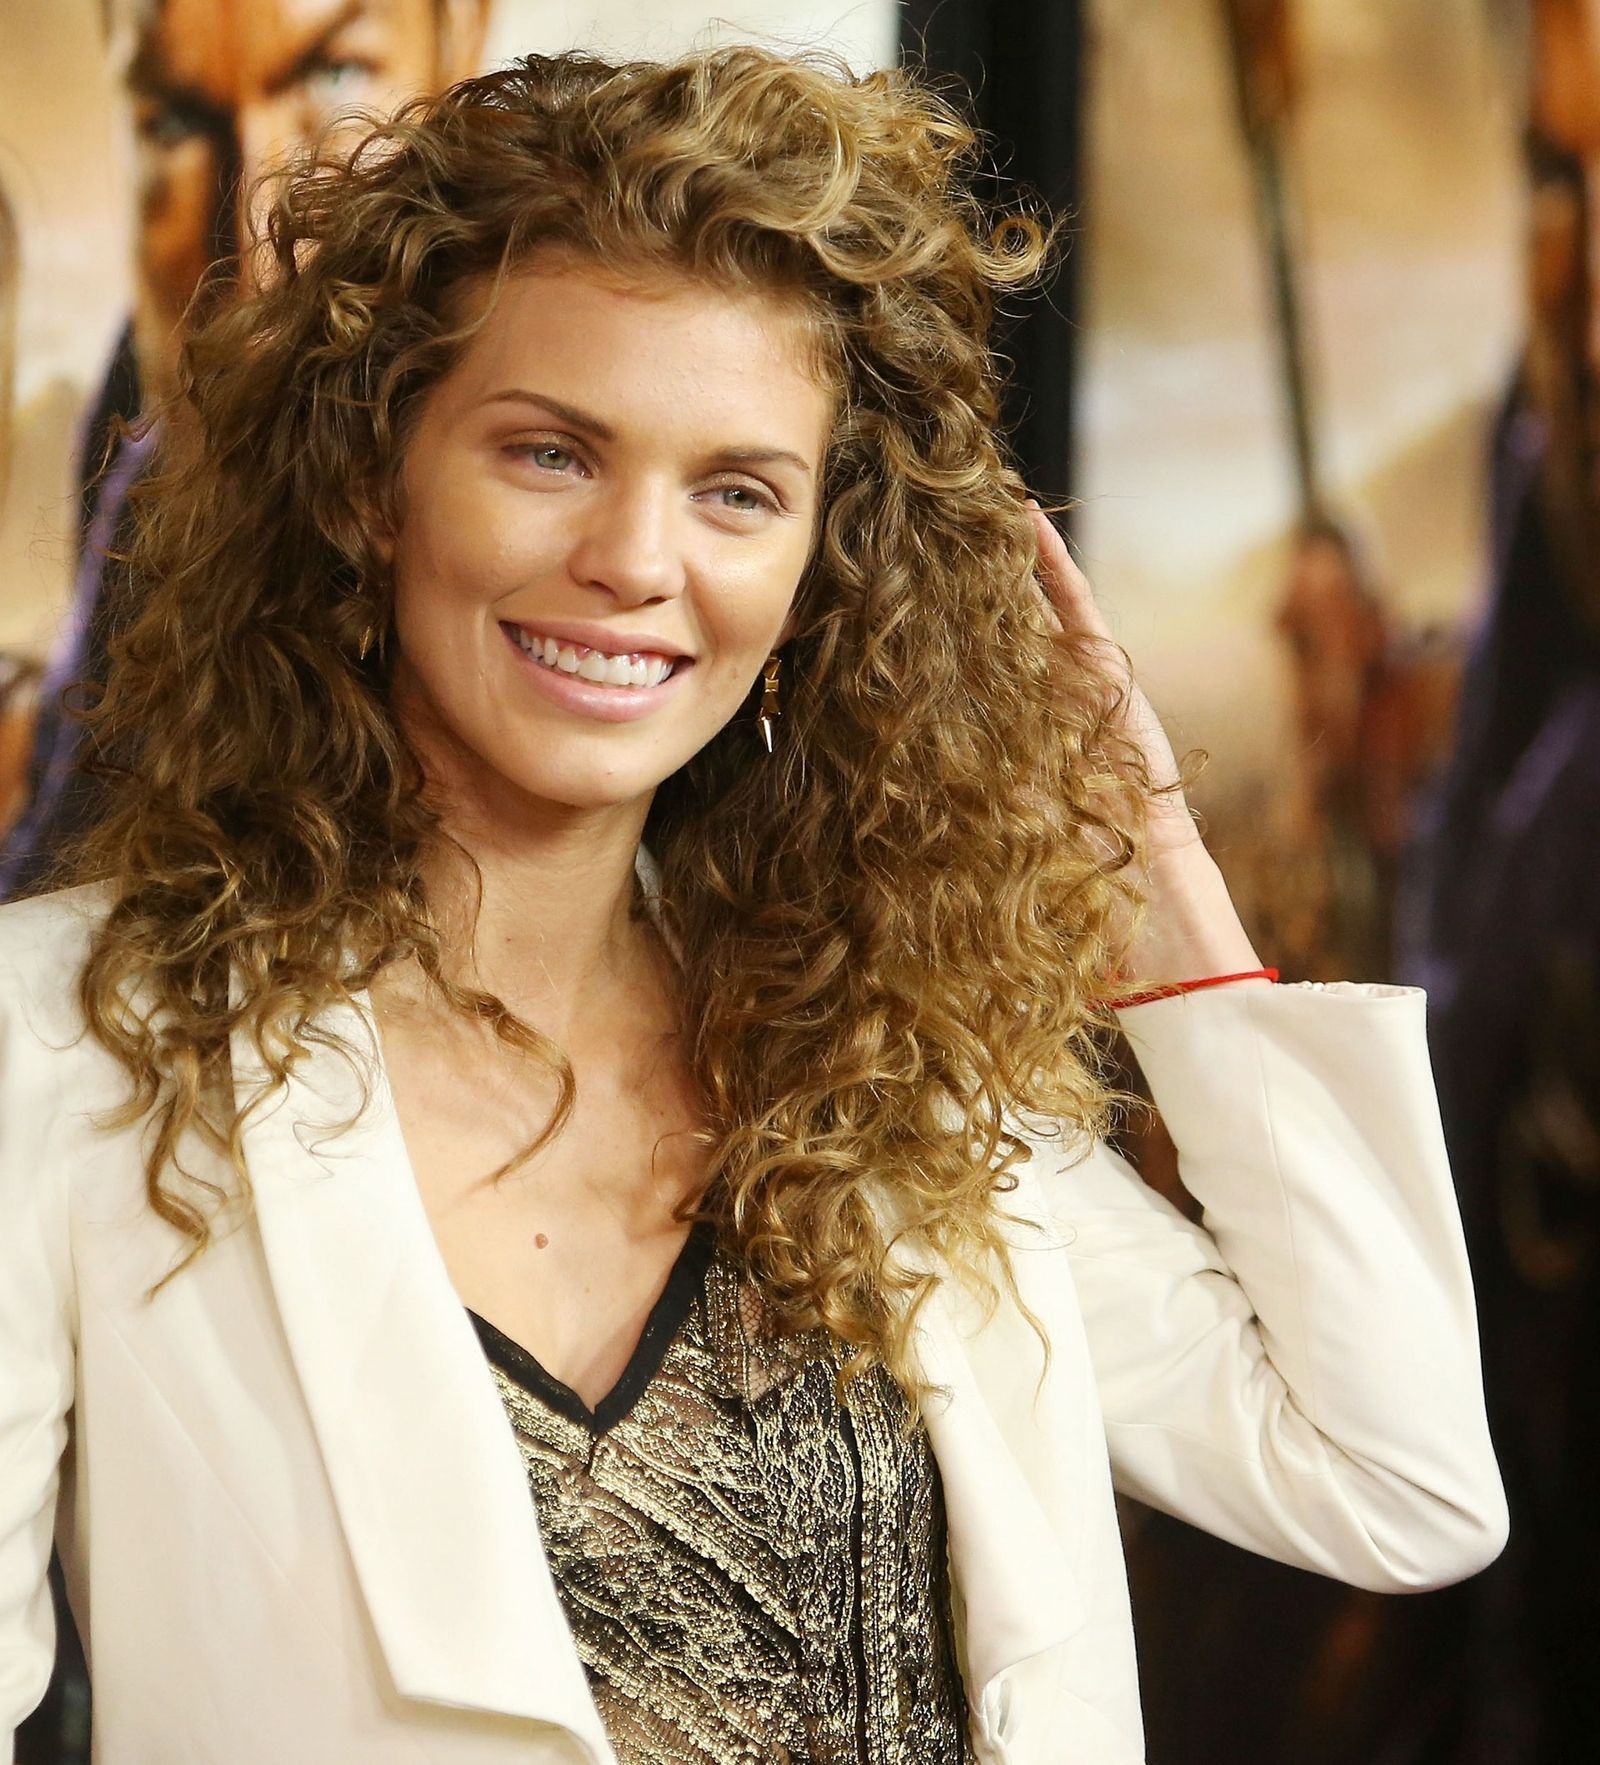 42 Hairstyles That Really Show Off Your Curls | Curly hair ...